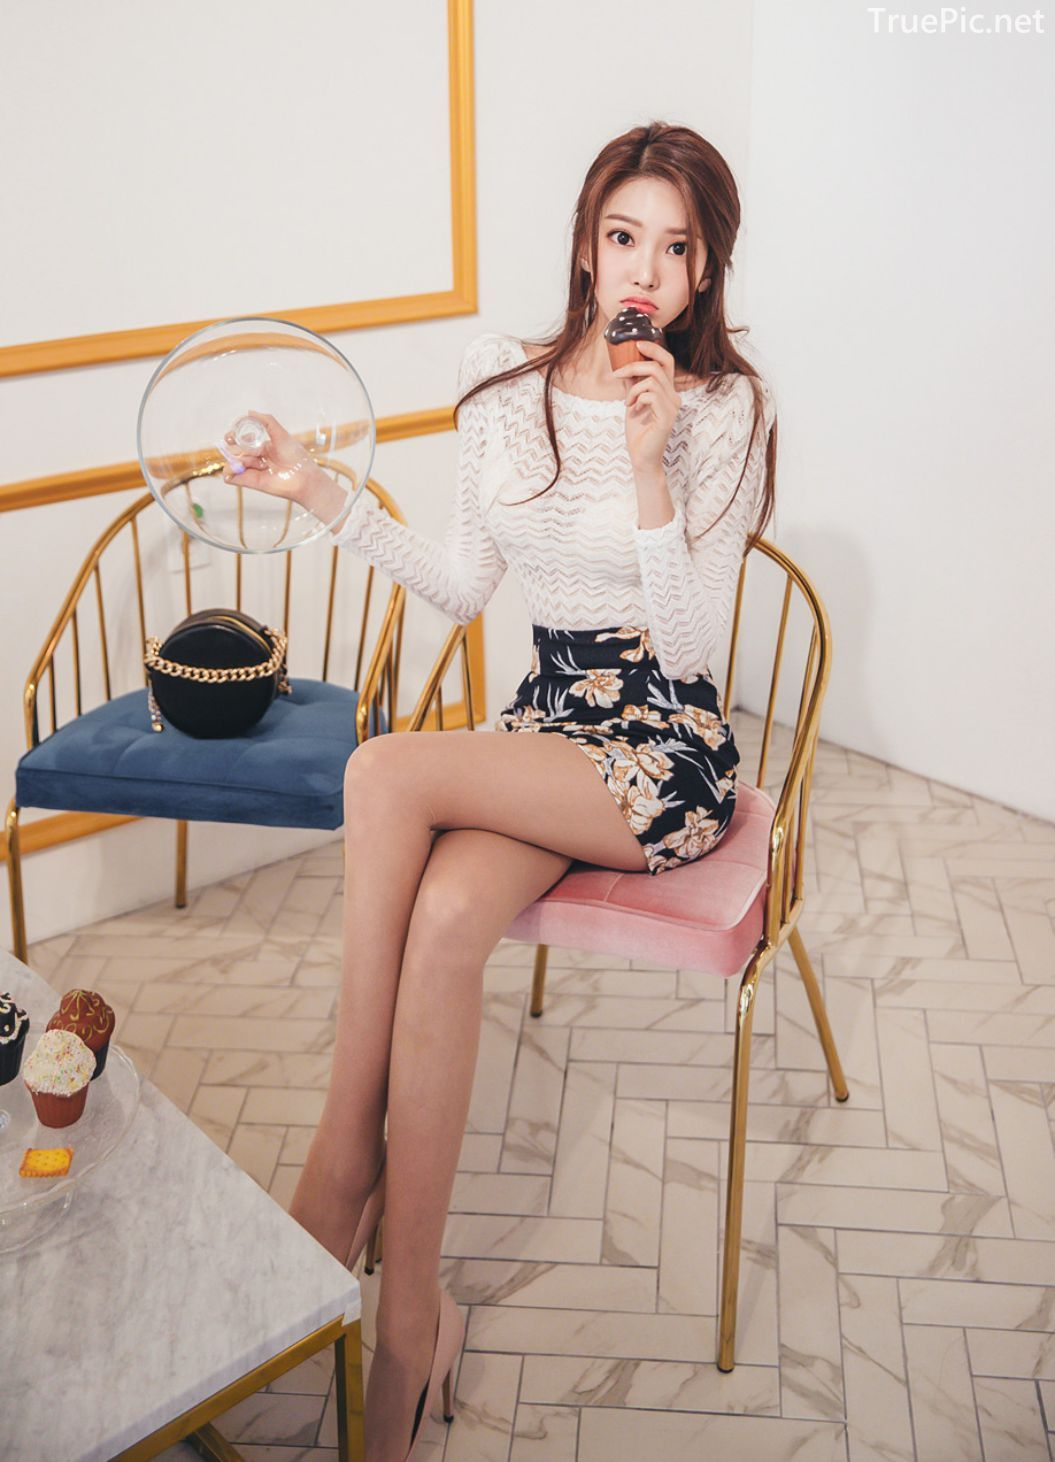 Park Jung Yoon - Korean Fashion Model - Casual Indoor Photoshoot - TruePic.net - Picture 8